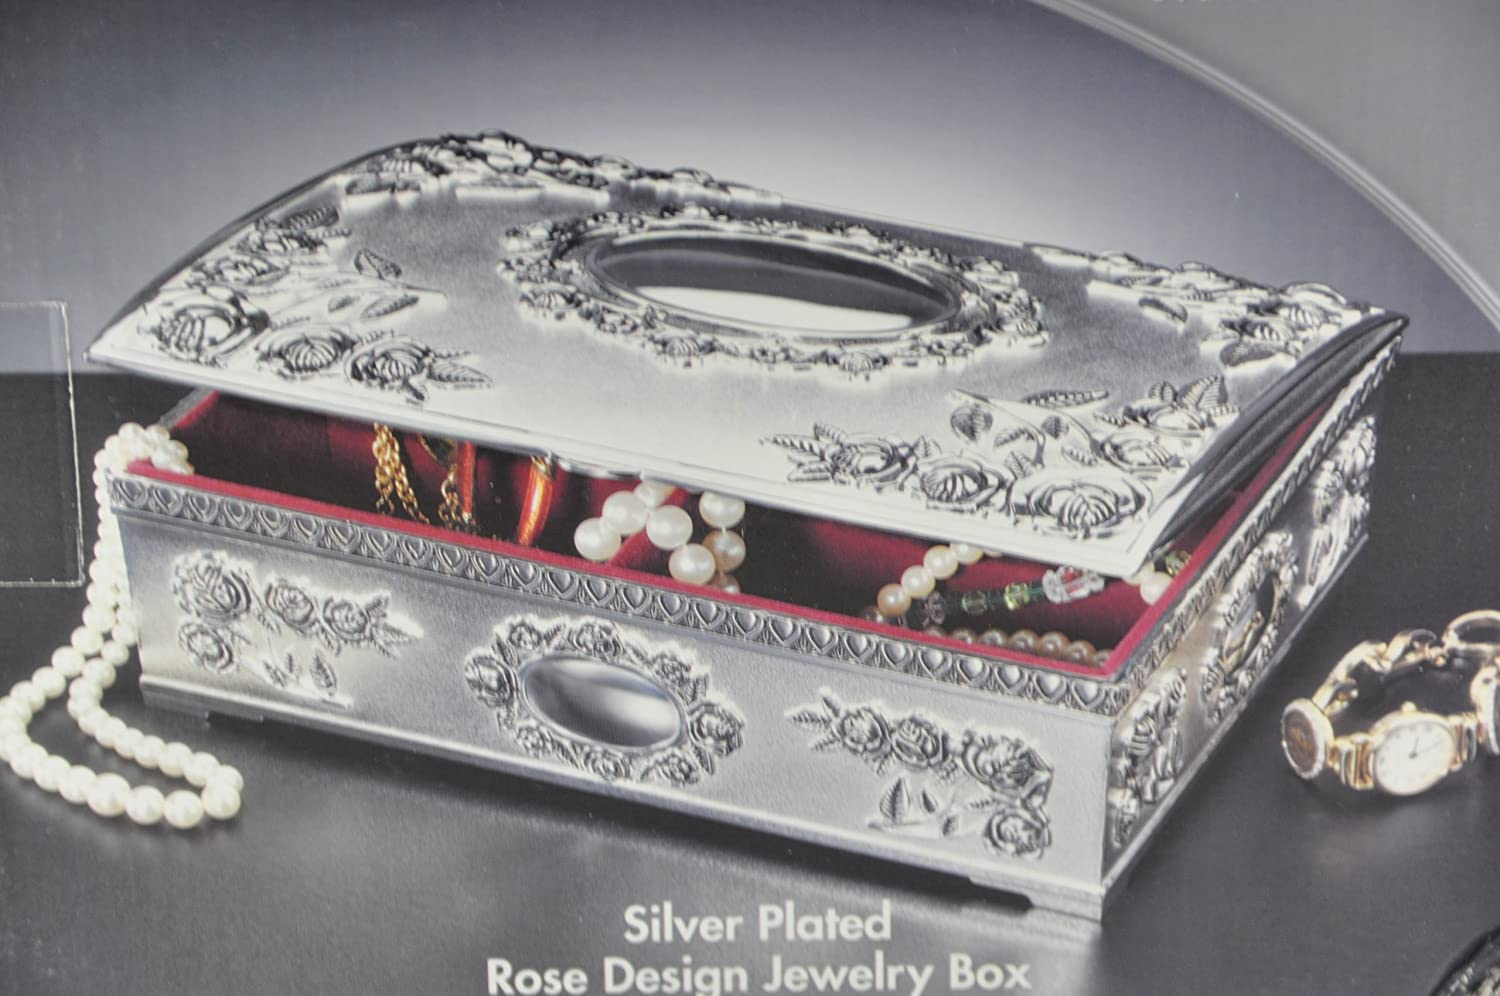 Amazoncom GODINGER Silver Plated Rose Design Jewelry Box Home